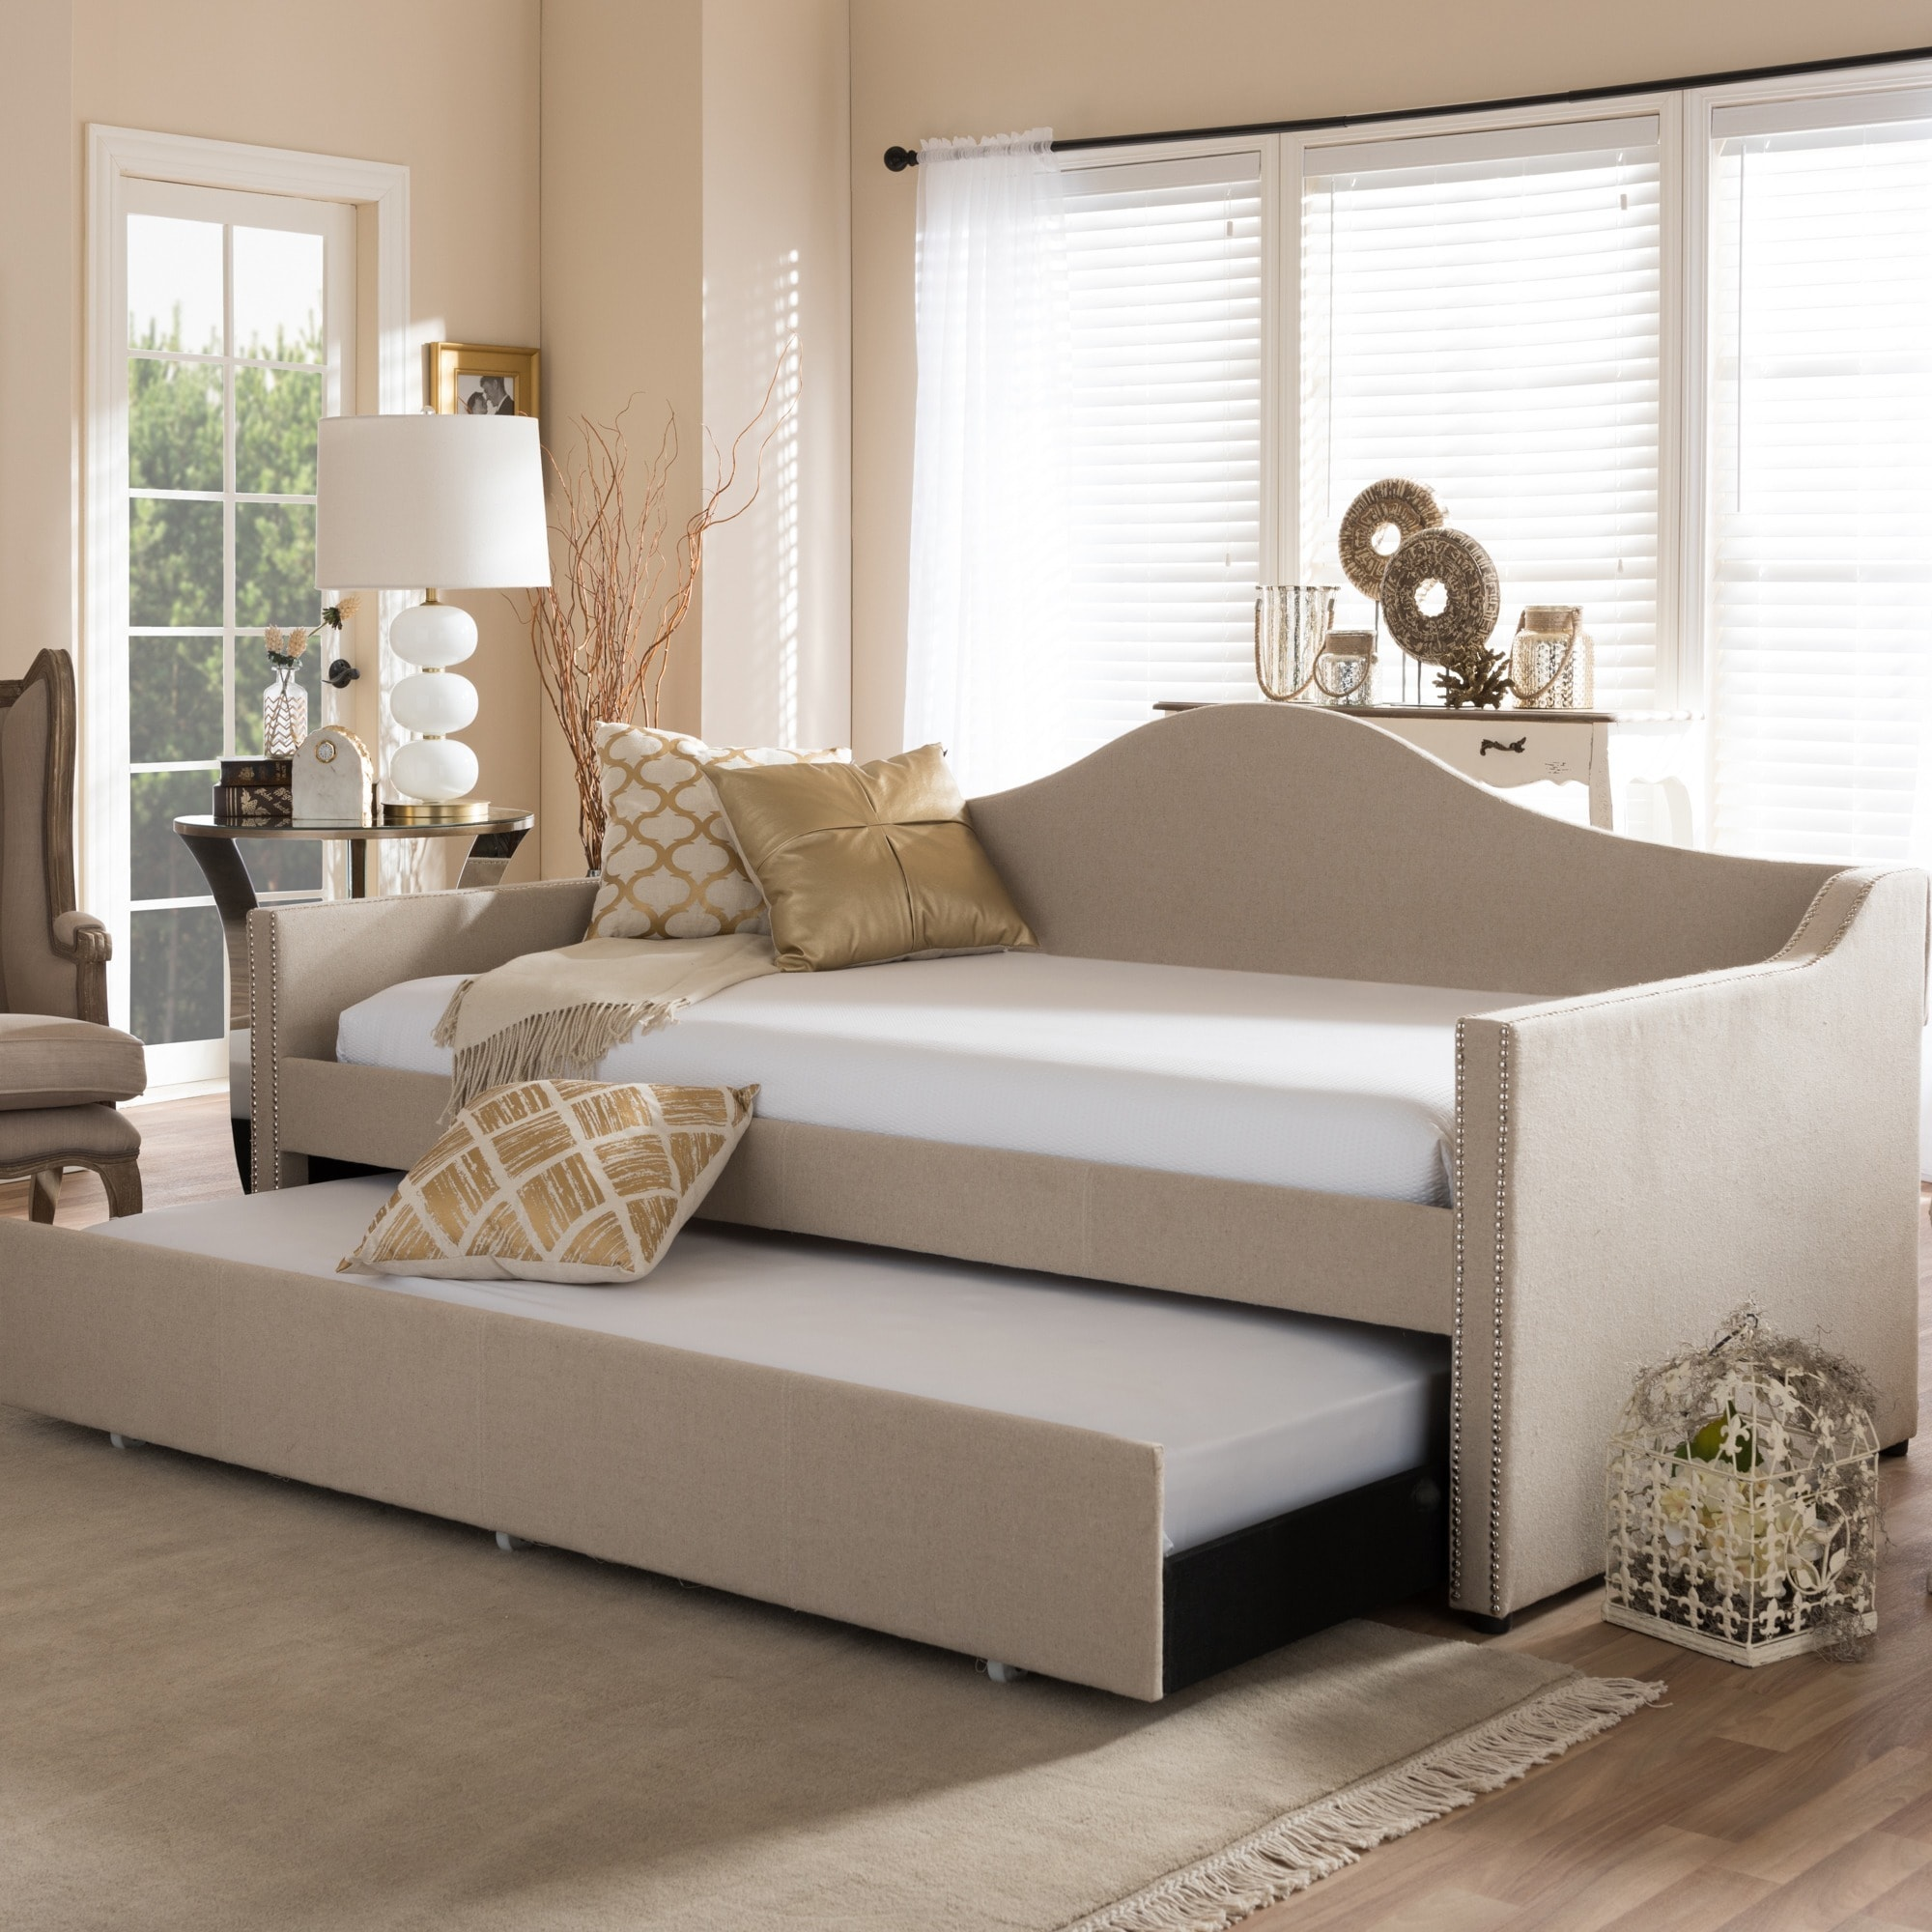 baxton studio psykhe modern contemporary beige or grey fabric upholsteredarch back sofa daybed with rollout trundle guest bed  free shipping today. baxton studio psykhe modern contemporary beige or grey fabric